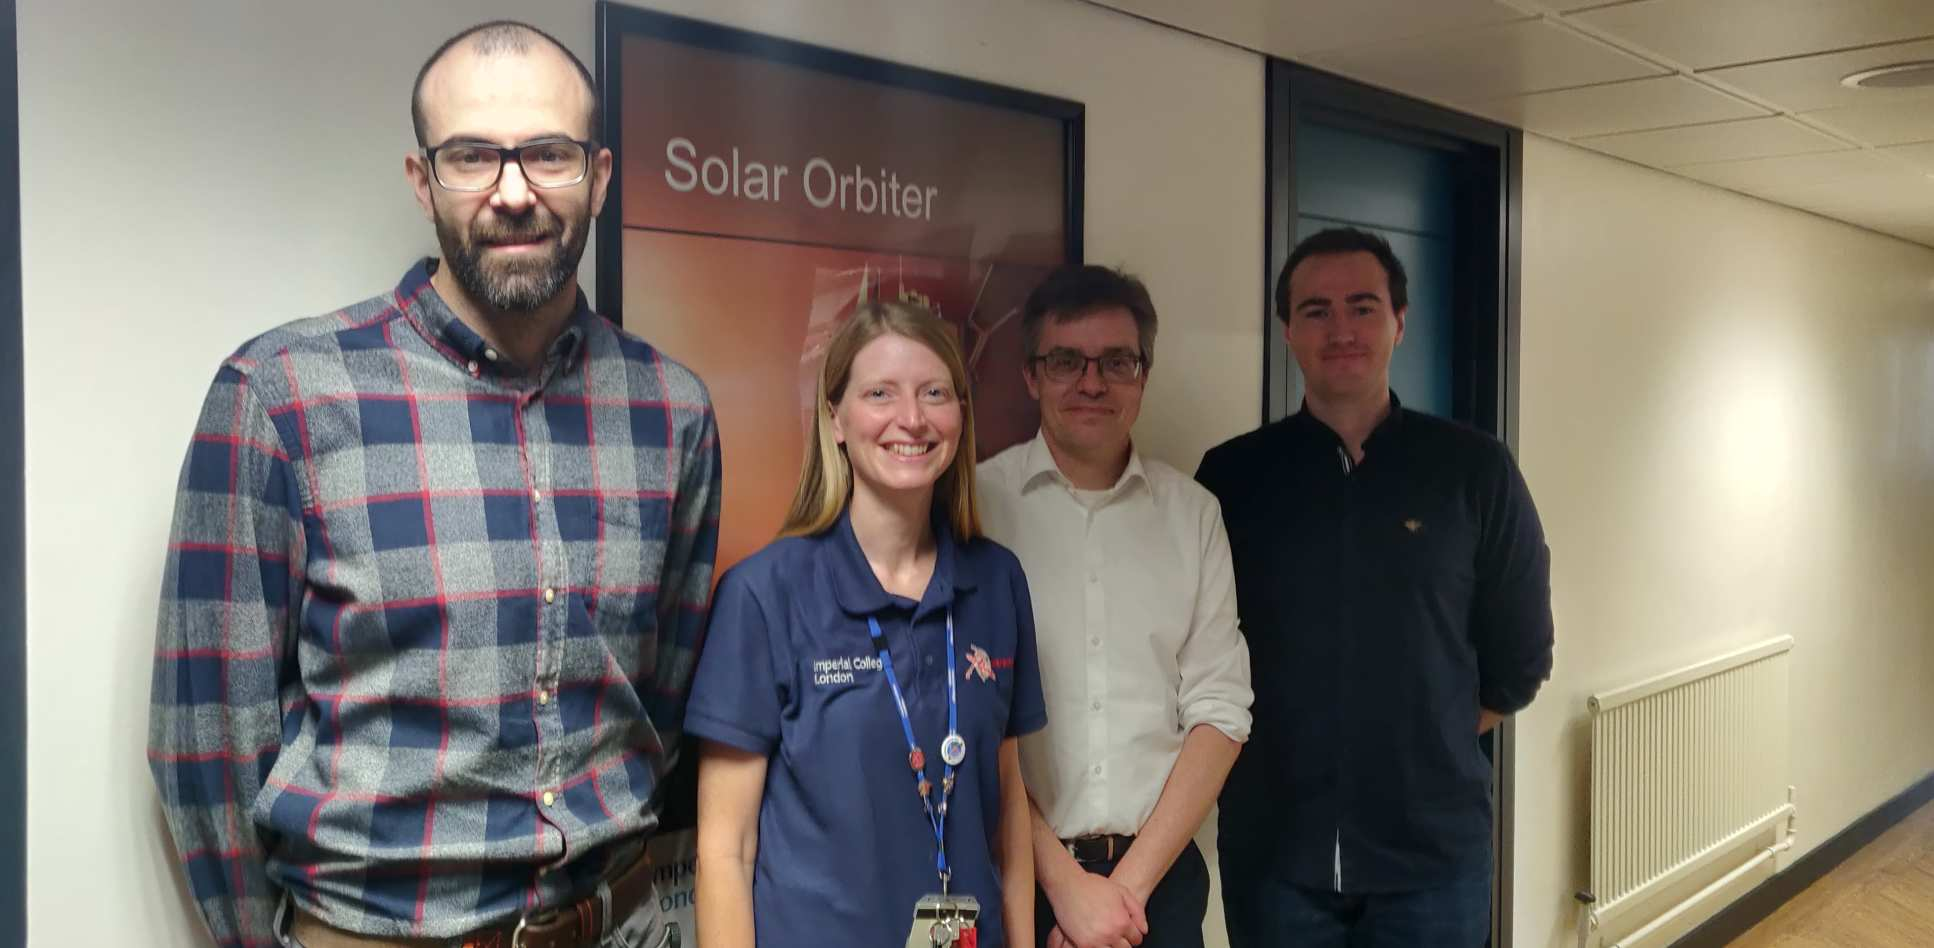 People in front of a Solar orbiter poster